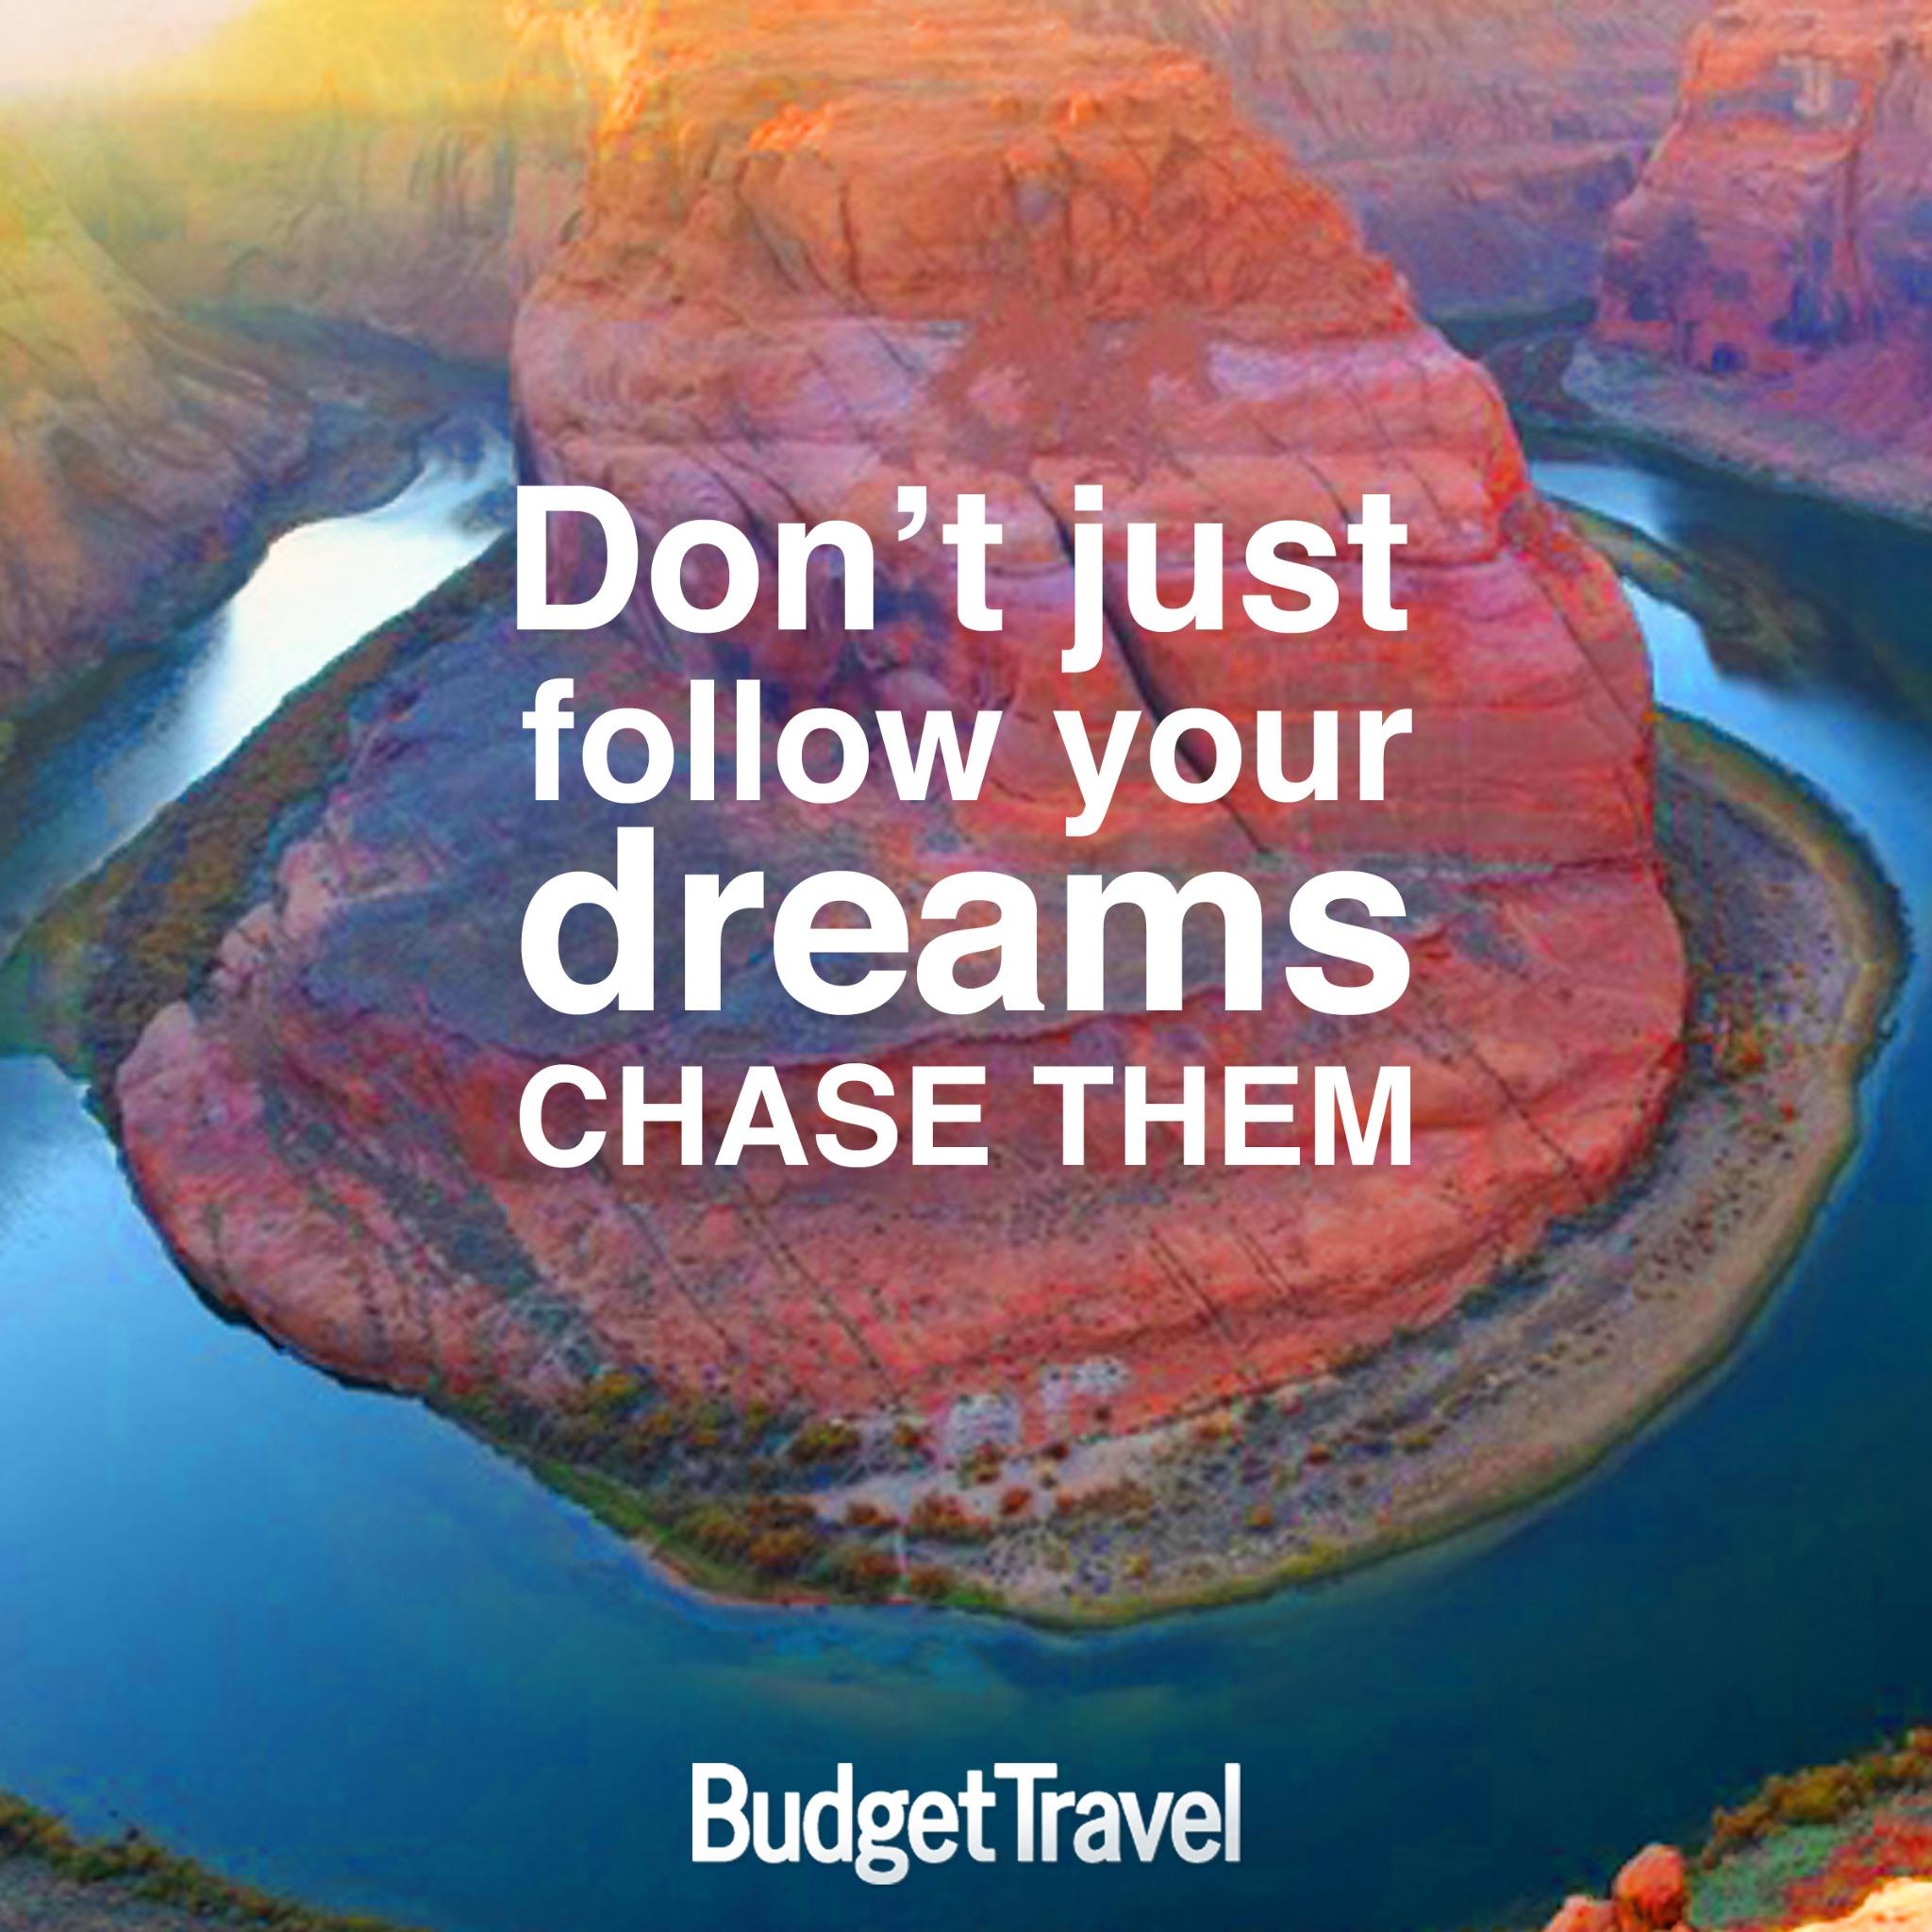 """""""Don't just follow your dreams.."""" #TravelTuesday #TravelQuotes http://t.co/k5Rafnp4rM"""